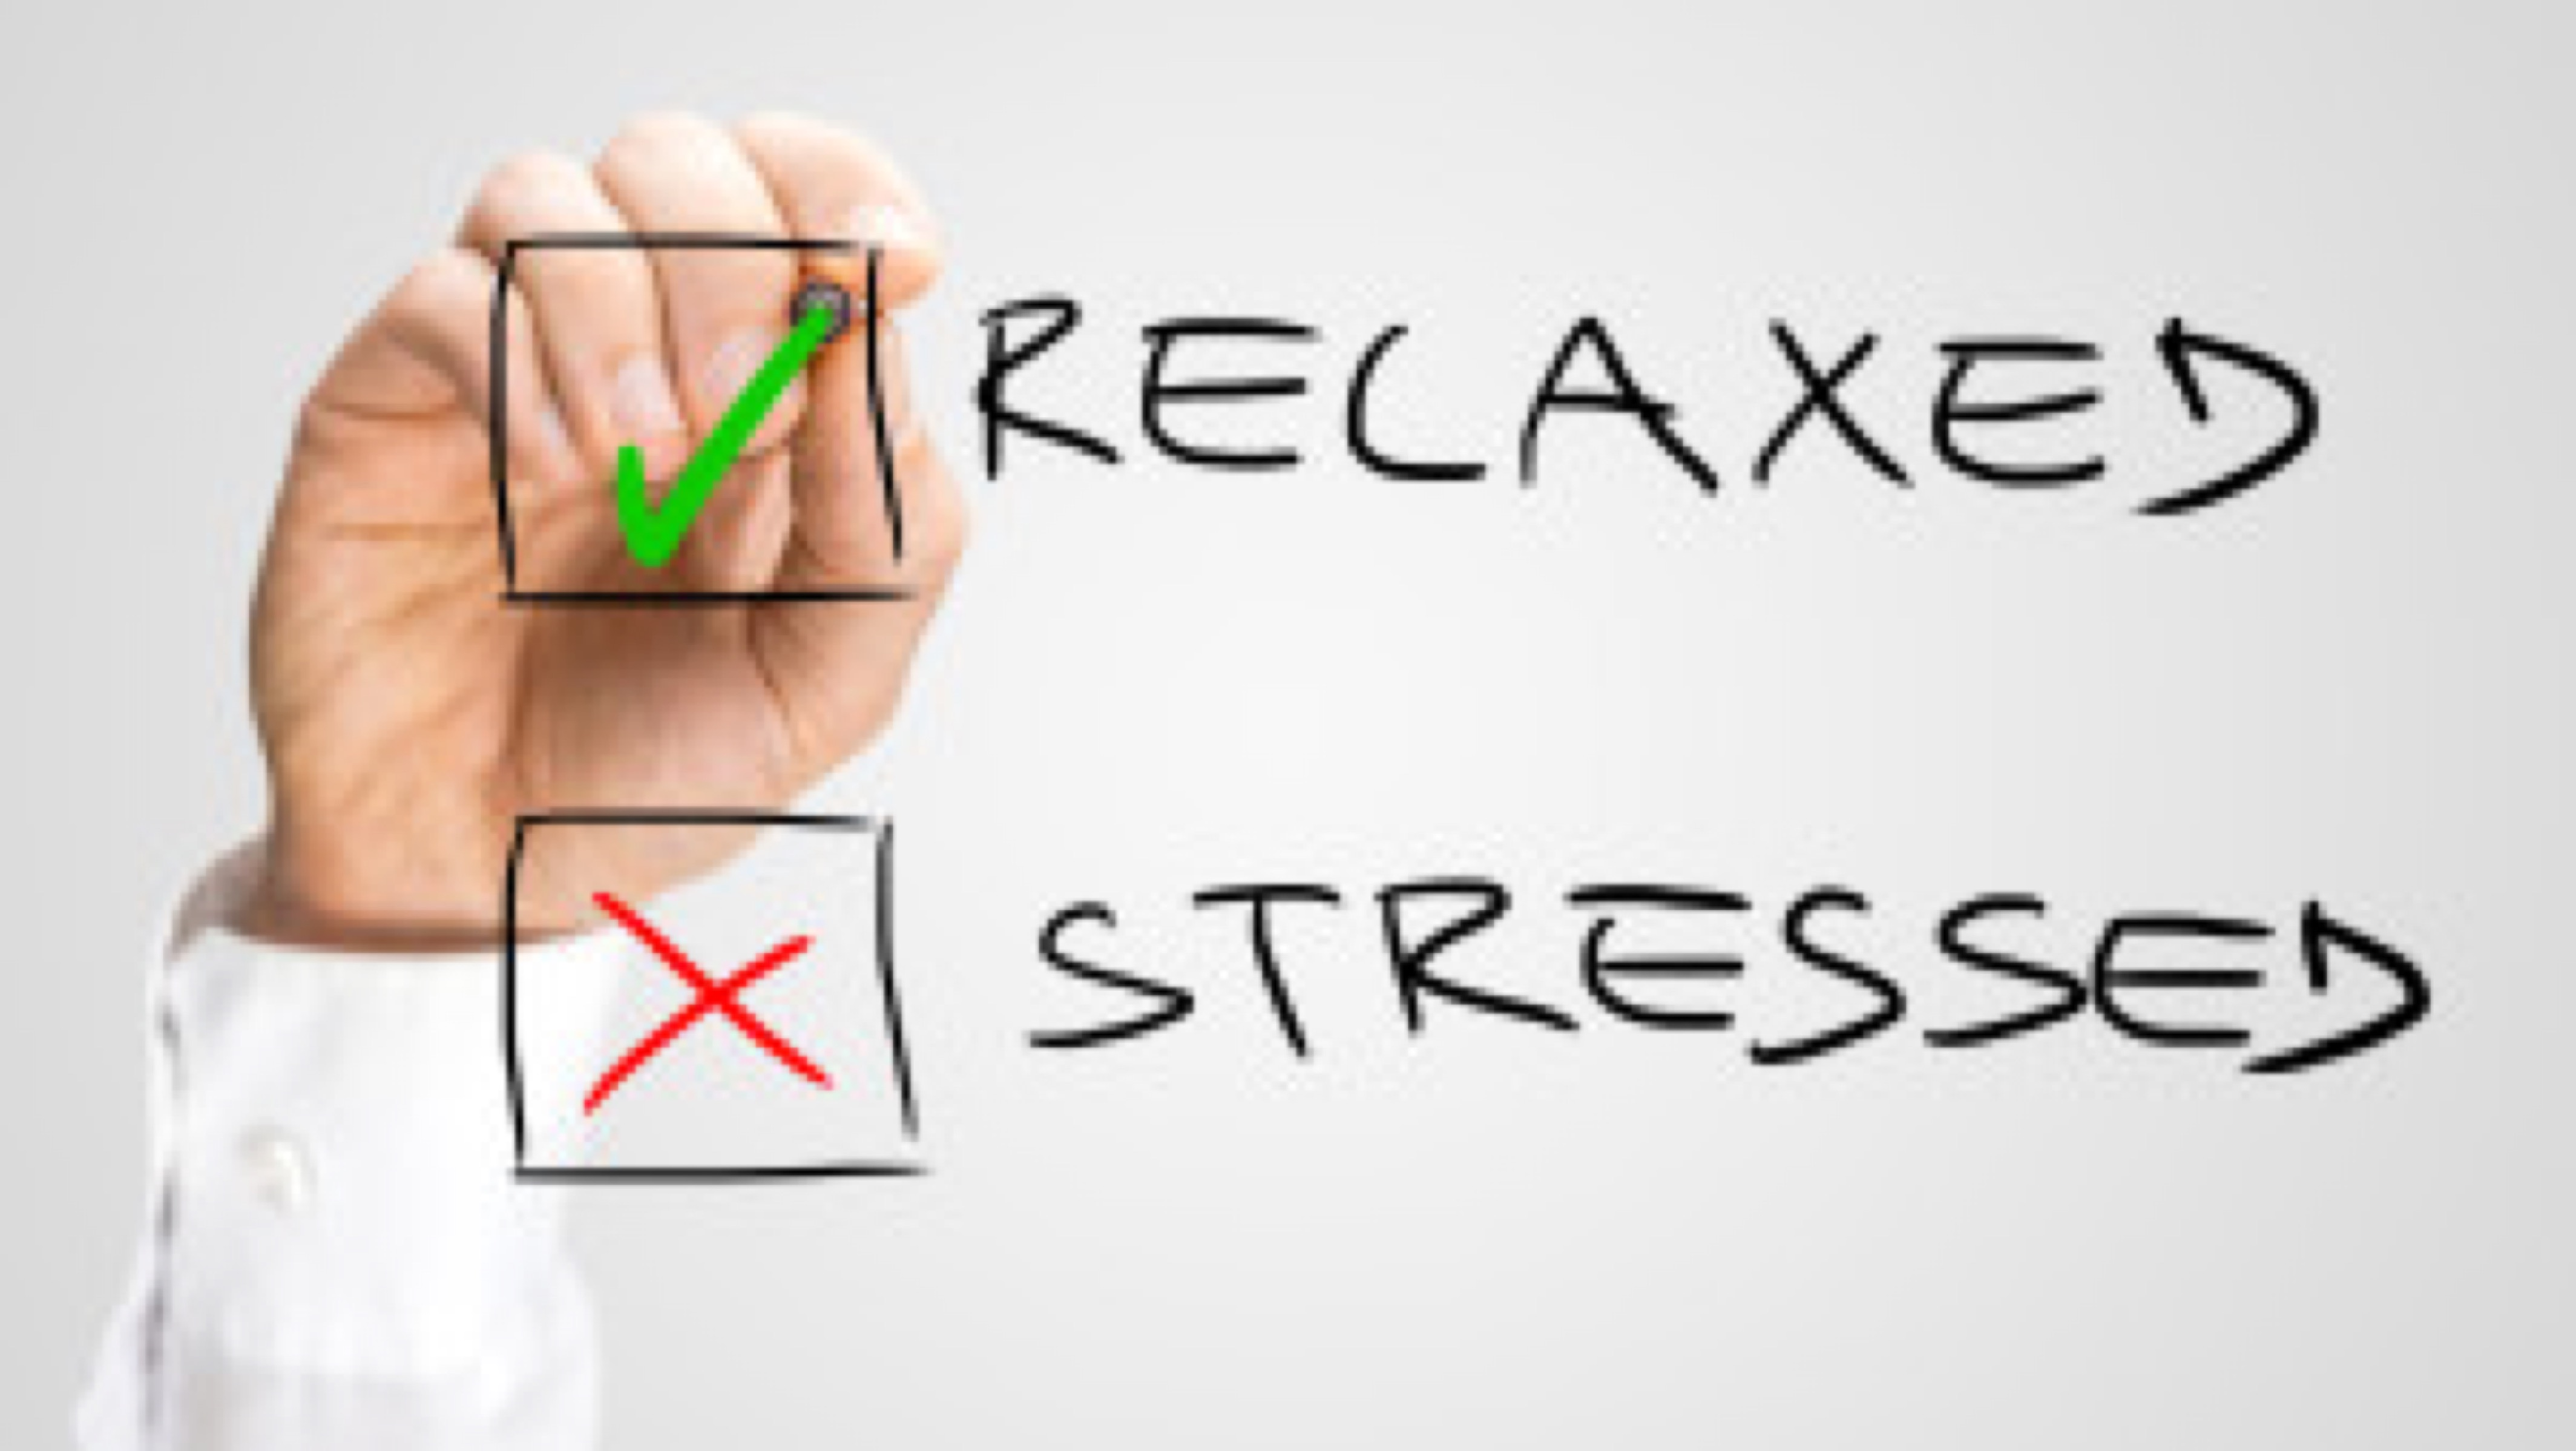 Check Box with Relaxed and Stressed Choices. One Hand Checking Relaxed Option. Isolated on Gray Background.